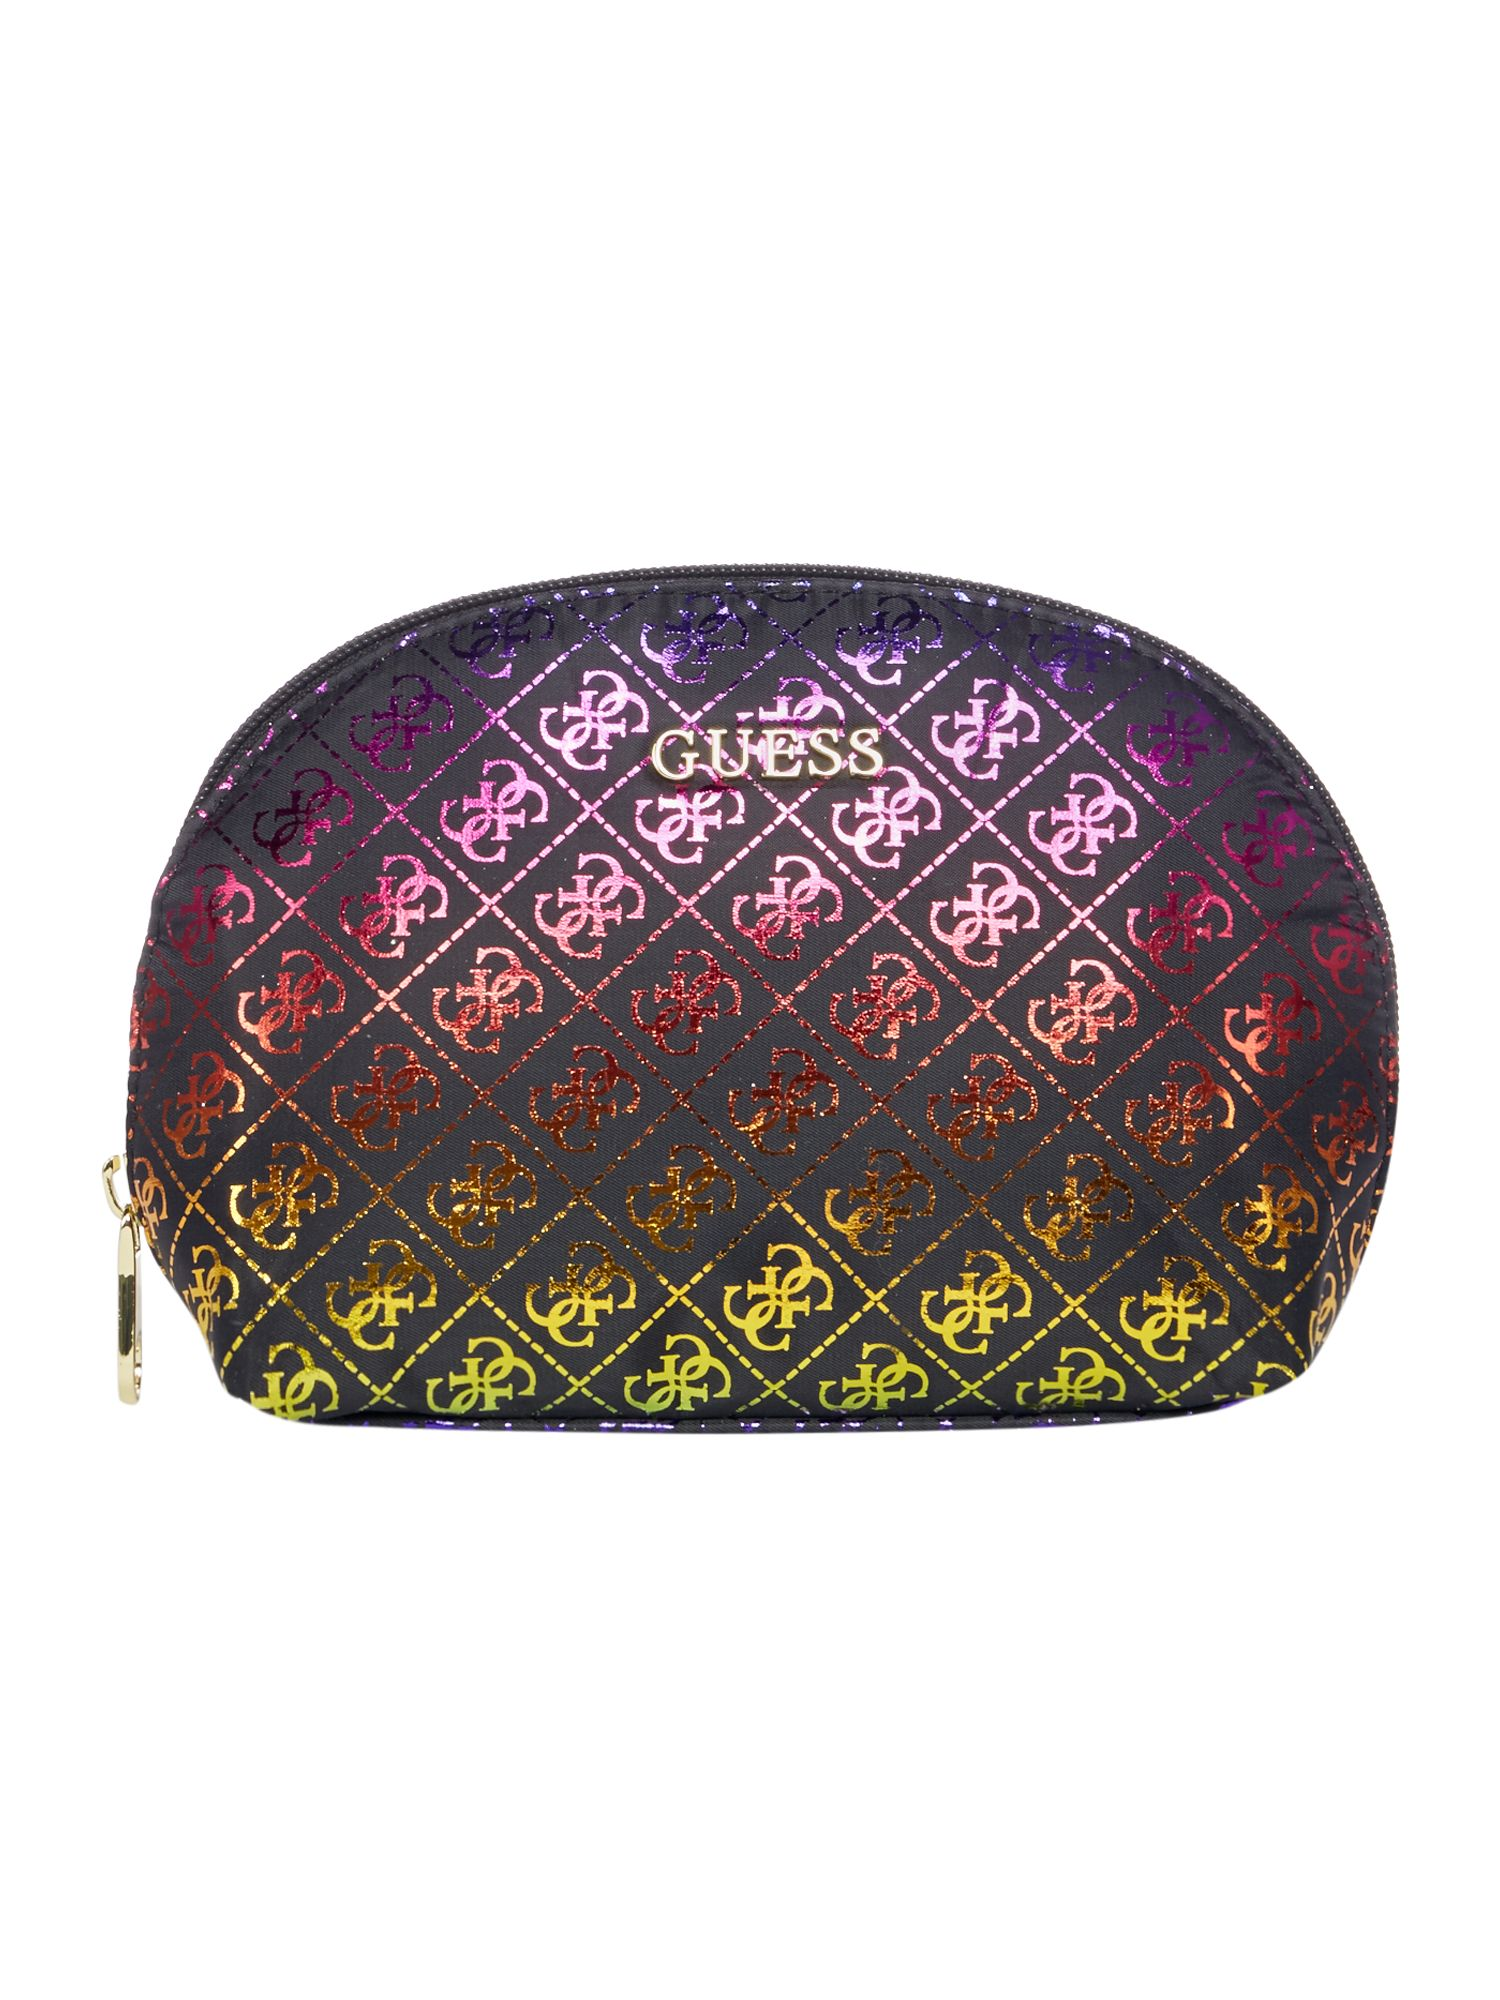 Guess 4g for fun new dome makeup bag, Black